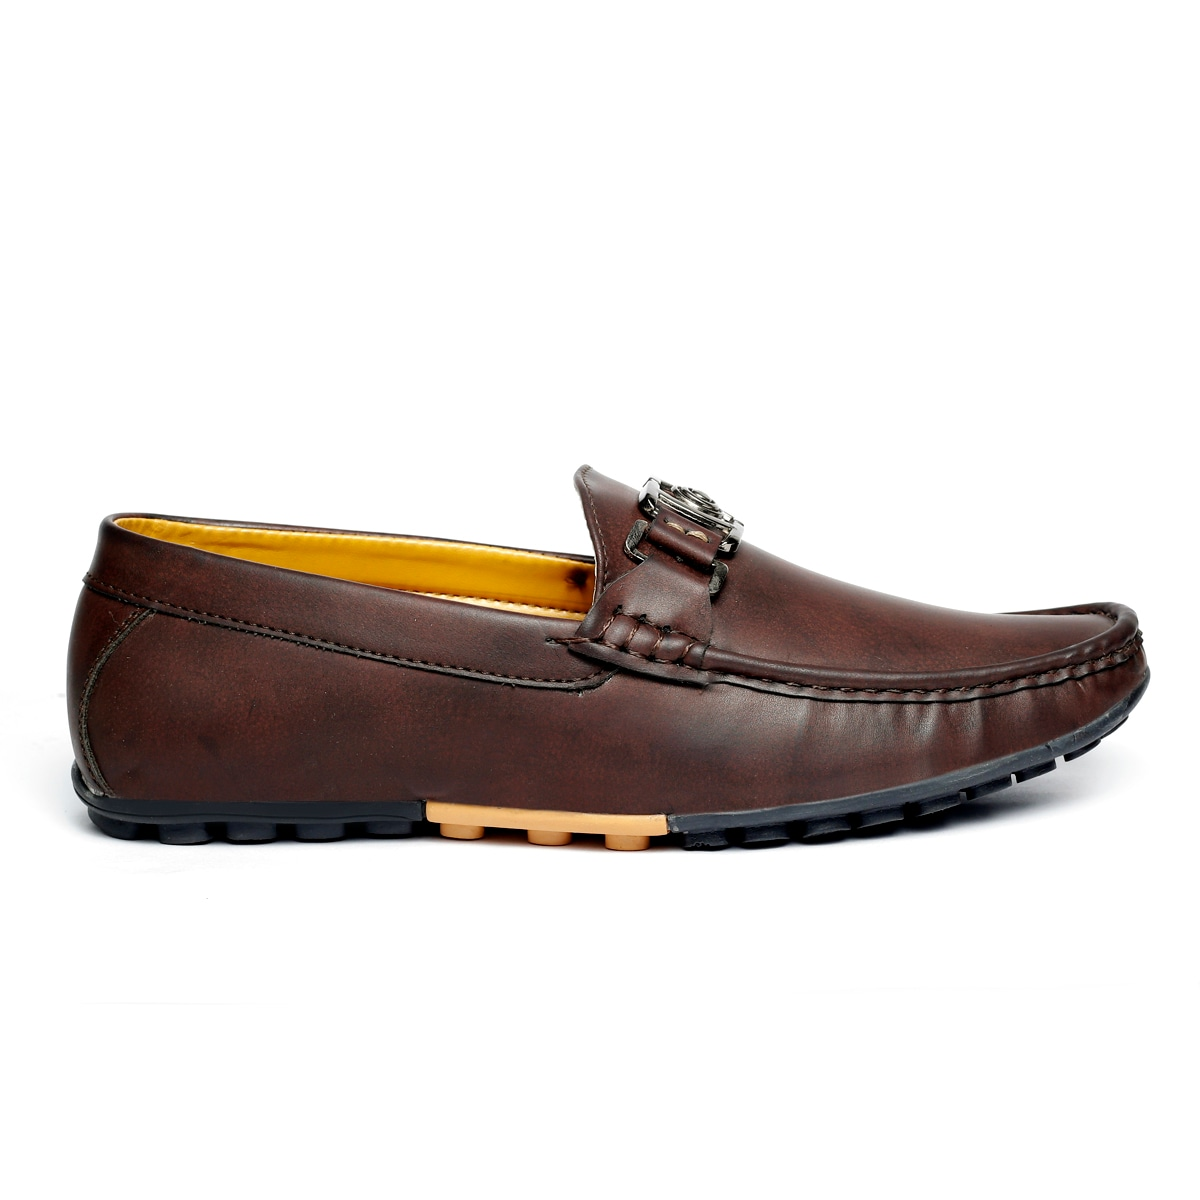 JK PORT COMFORTABLE, FASHIONABLE AND TRENDY LOAFERS JKPLF039BRN (BROWN,6-10,8 PAIR)